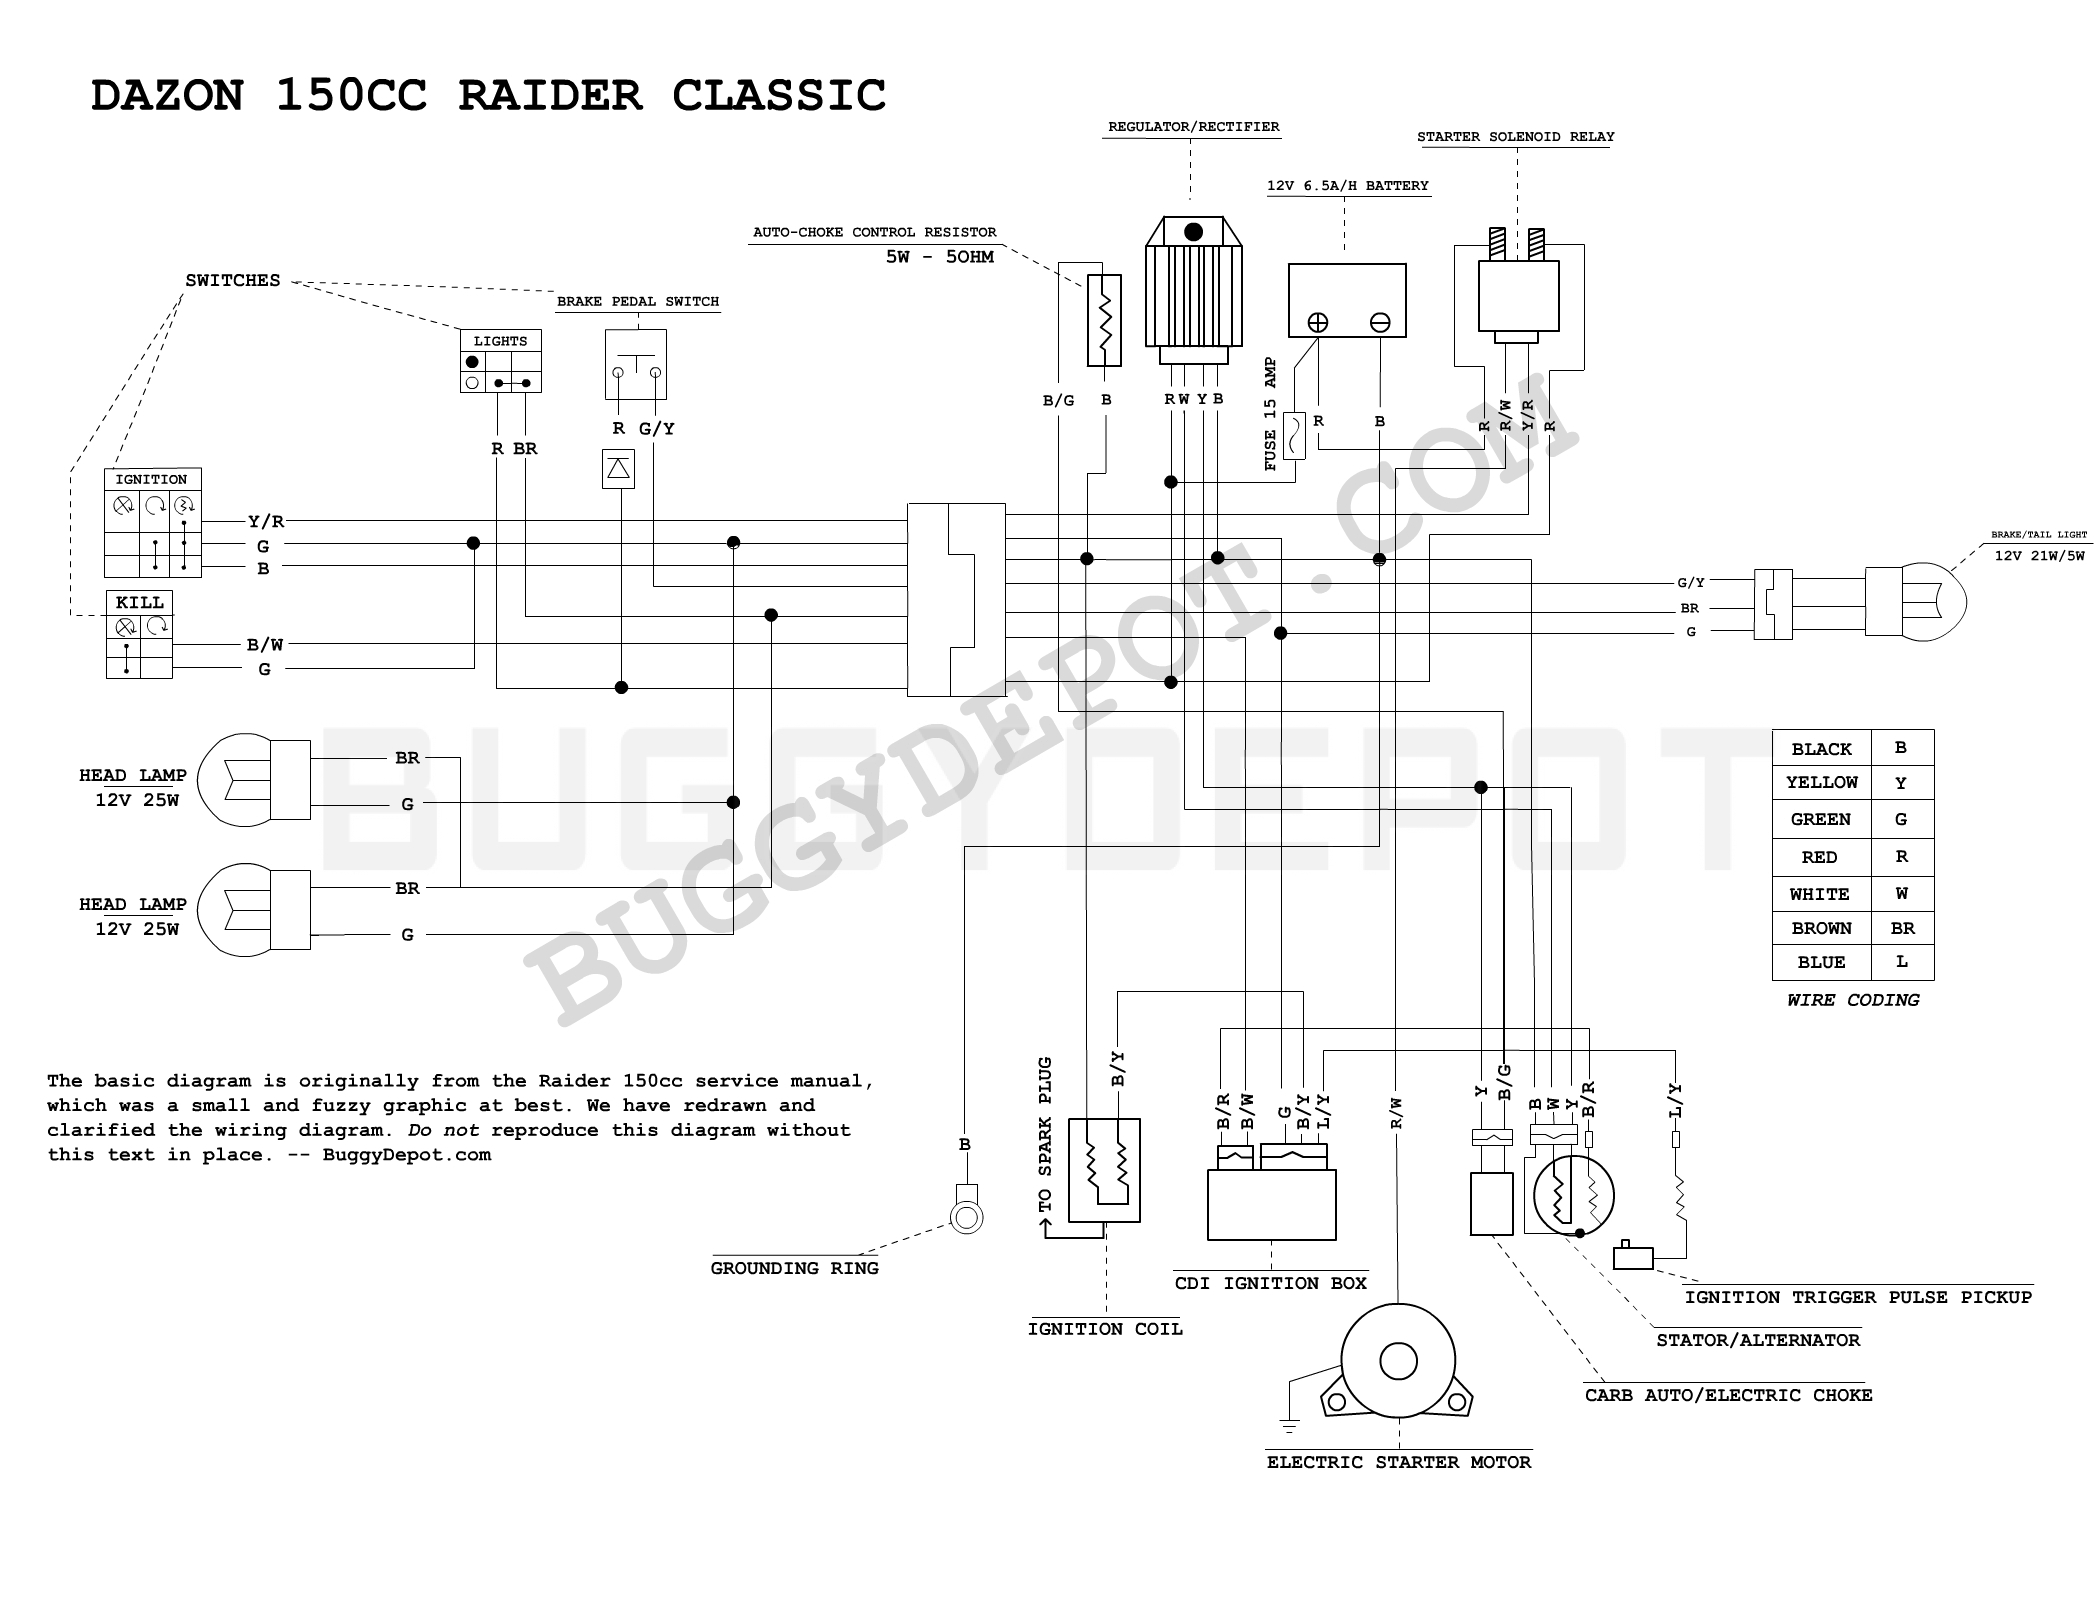 Dazon Raider Classic - Wiring Diagram - Buggy Depot Technical Center